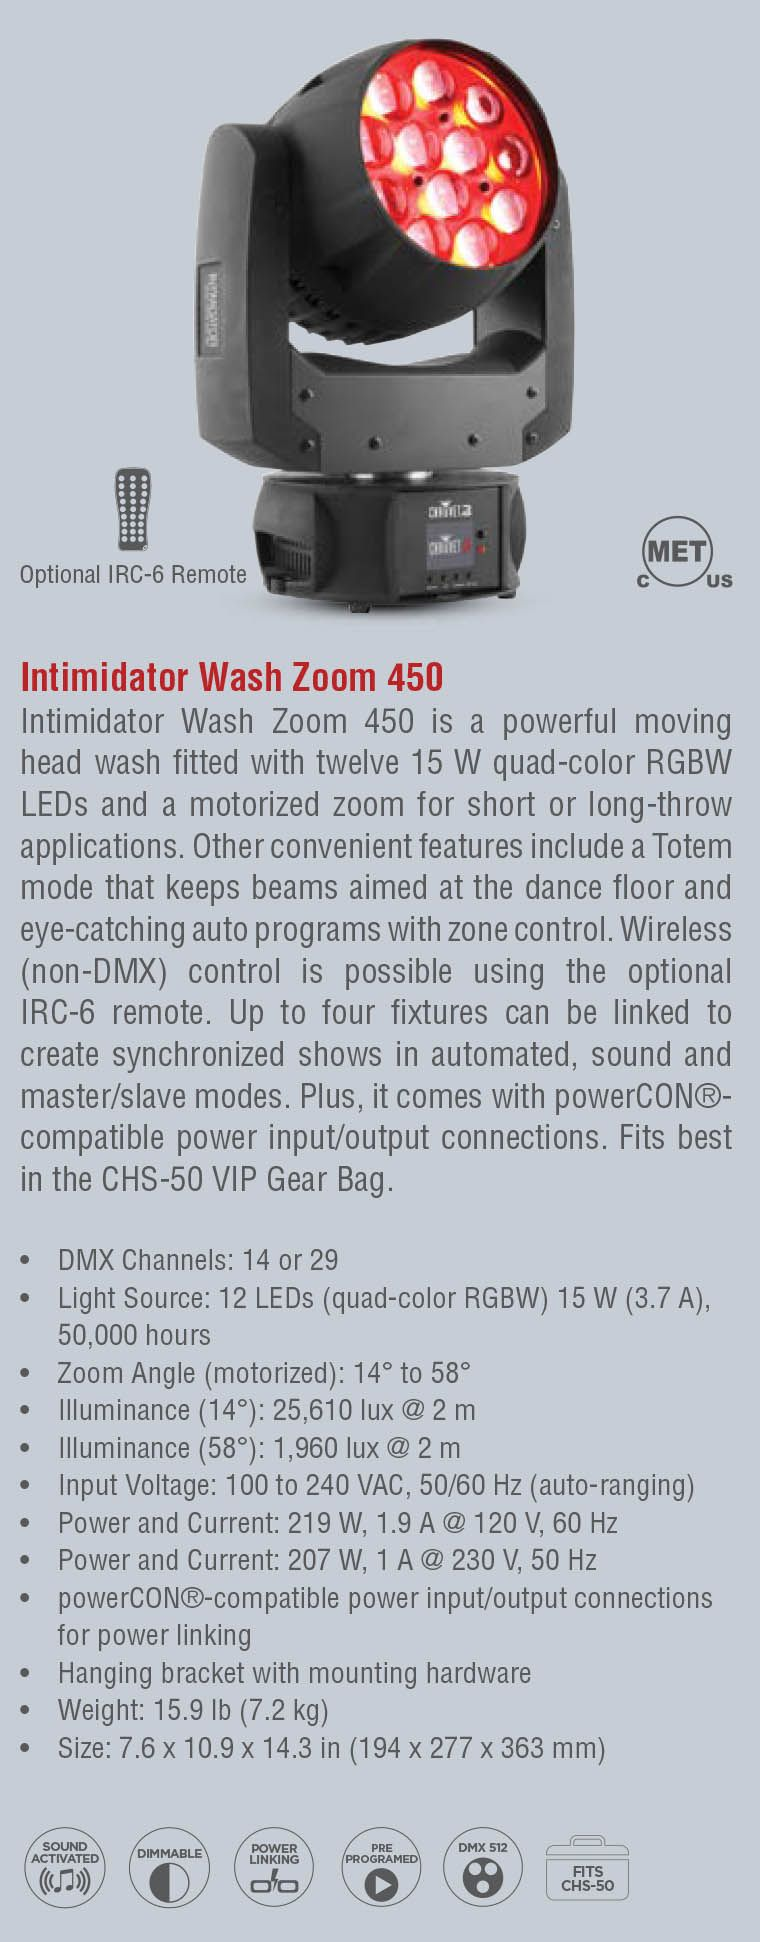 Intimidator Wash Zoom 450